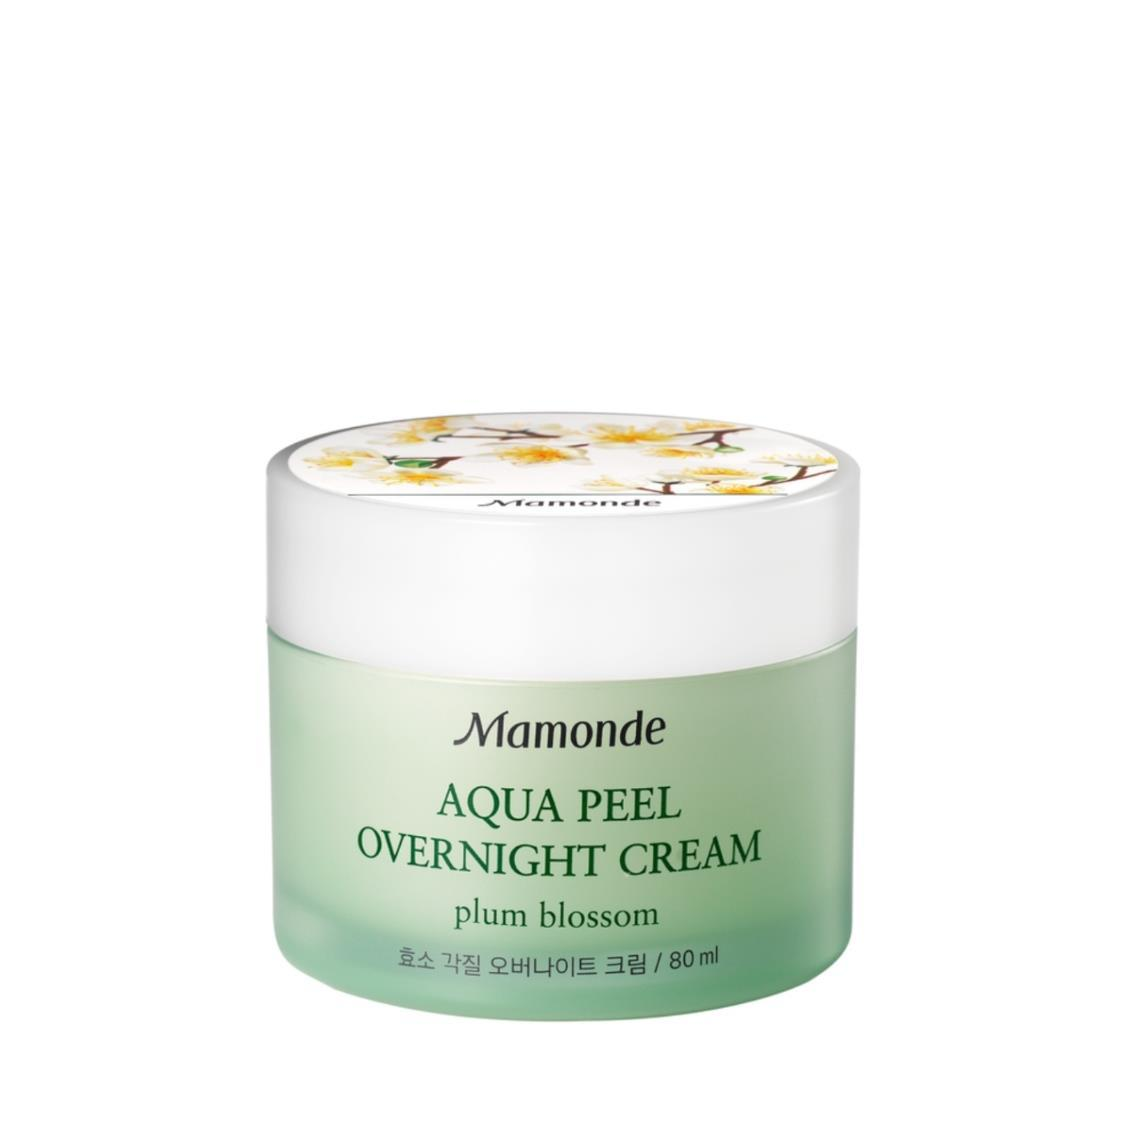 Aqua Peel Overnight Cream 80ml